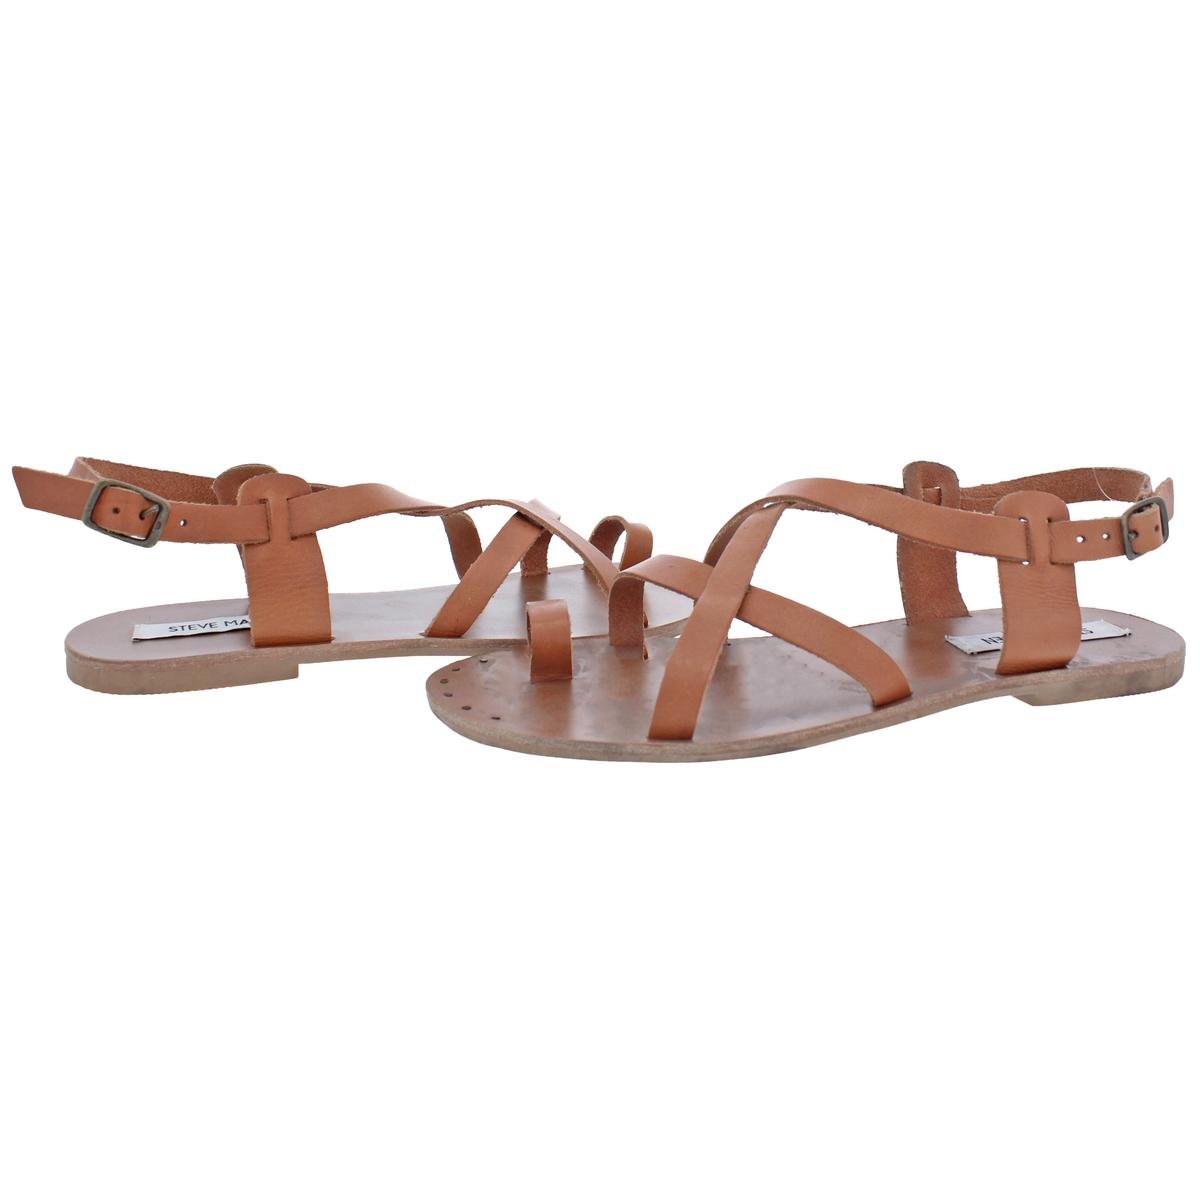 Steve-Madden-Women-039-s-Aatheena-Leather-Strappy-Slingback-Flat-Sandals-Shoes thumbnail 3